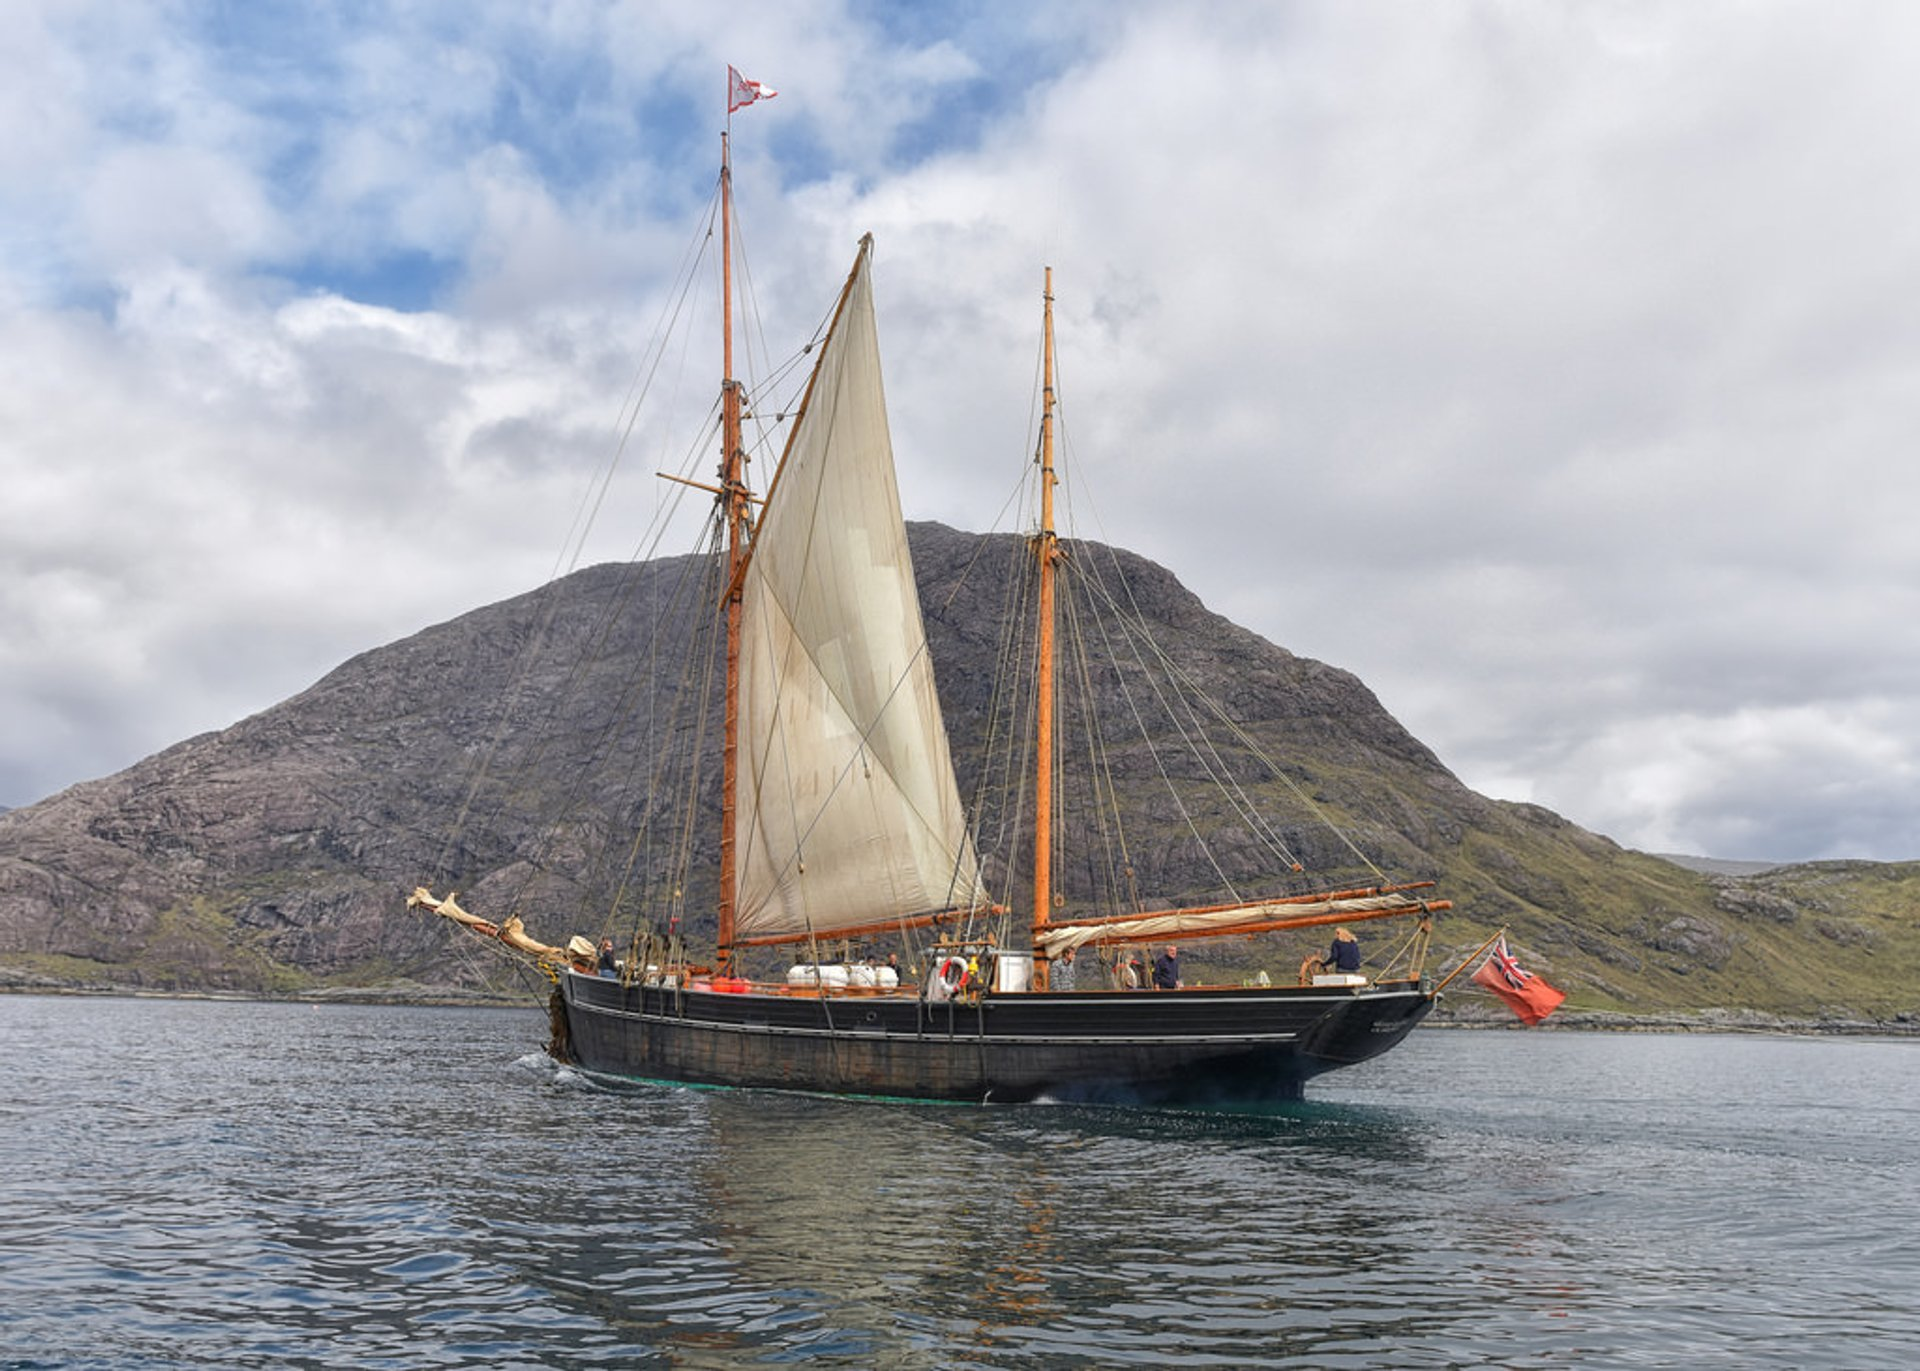 Sailing around the Small Isles in Scotland 2020 - Best Time